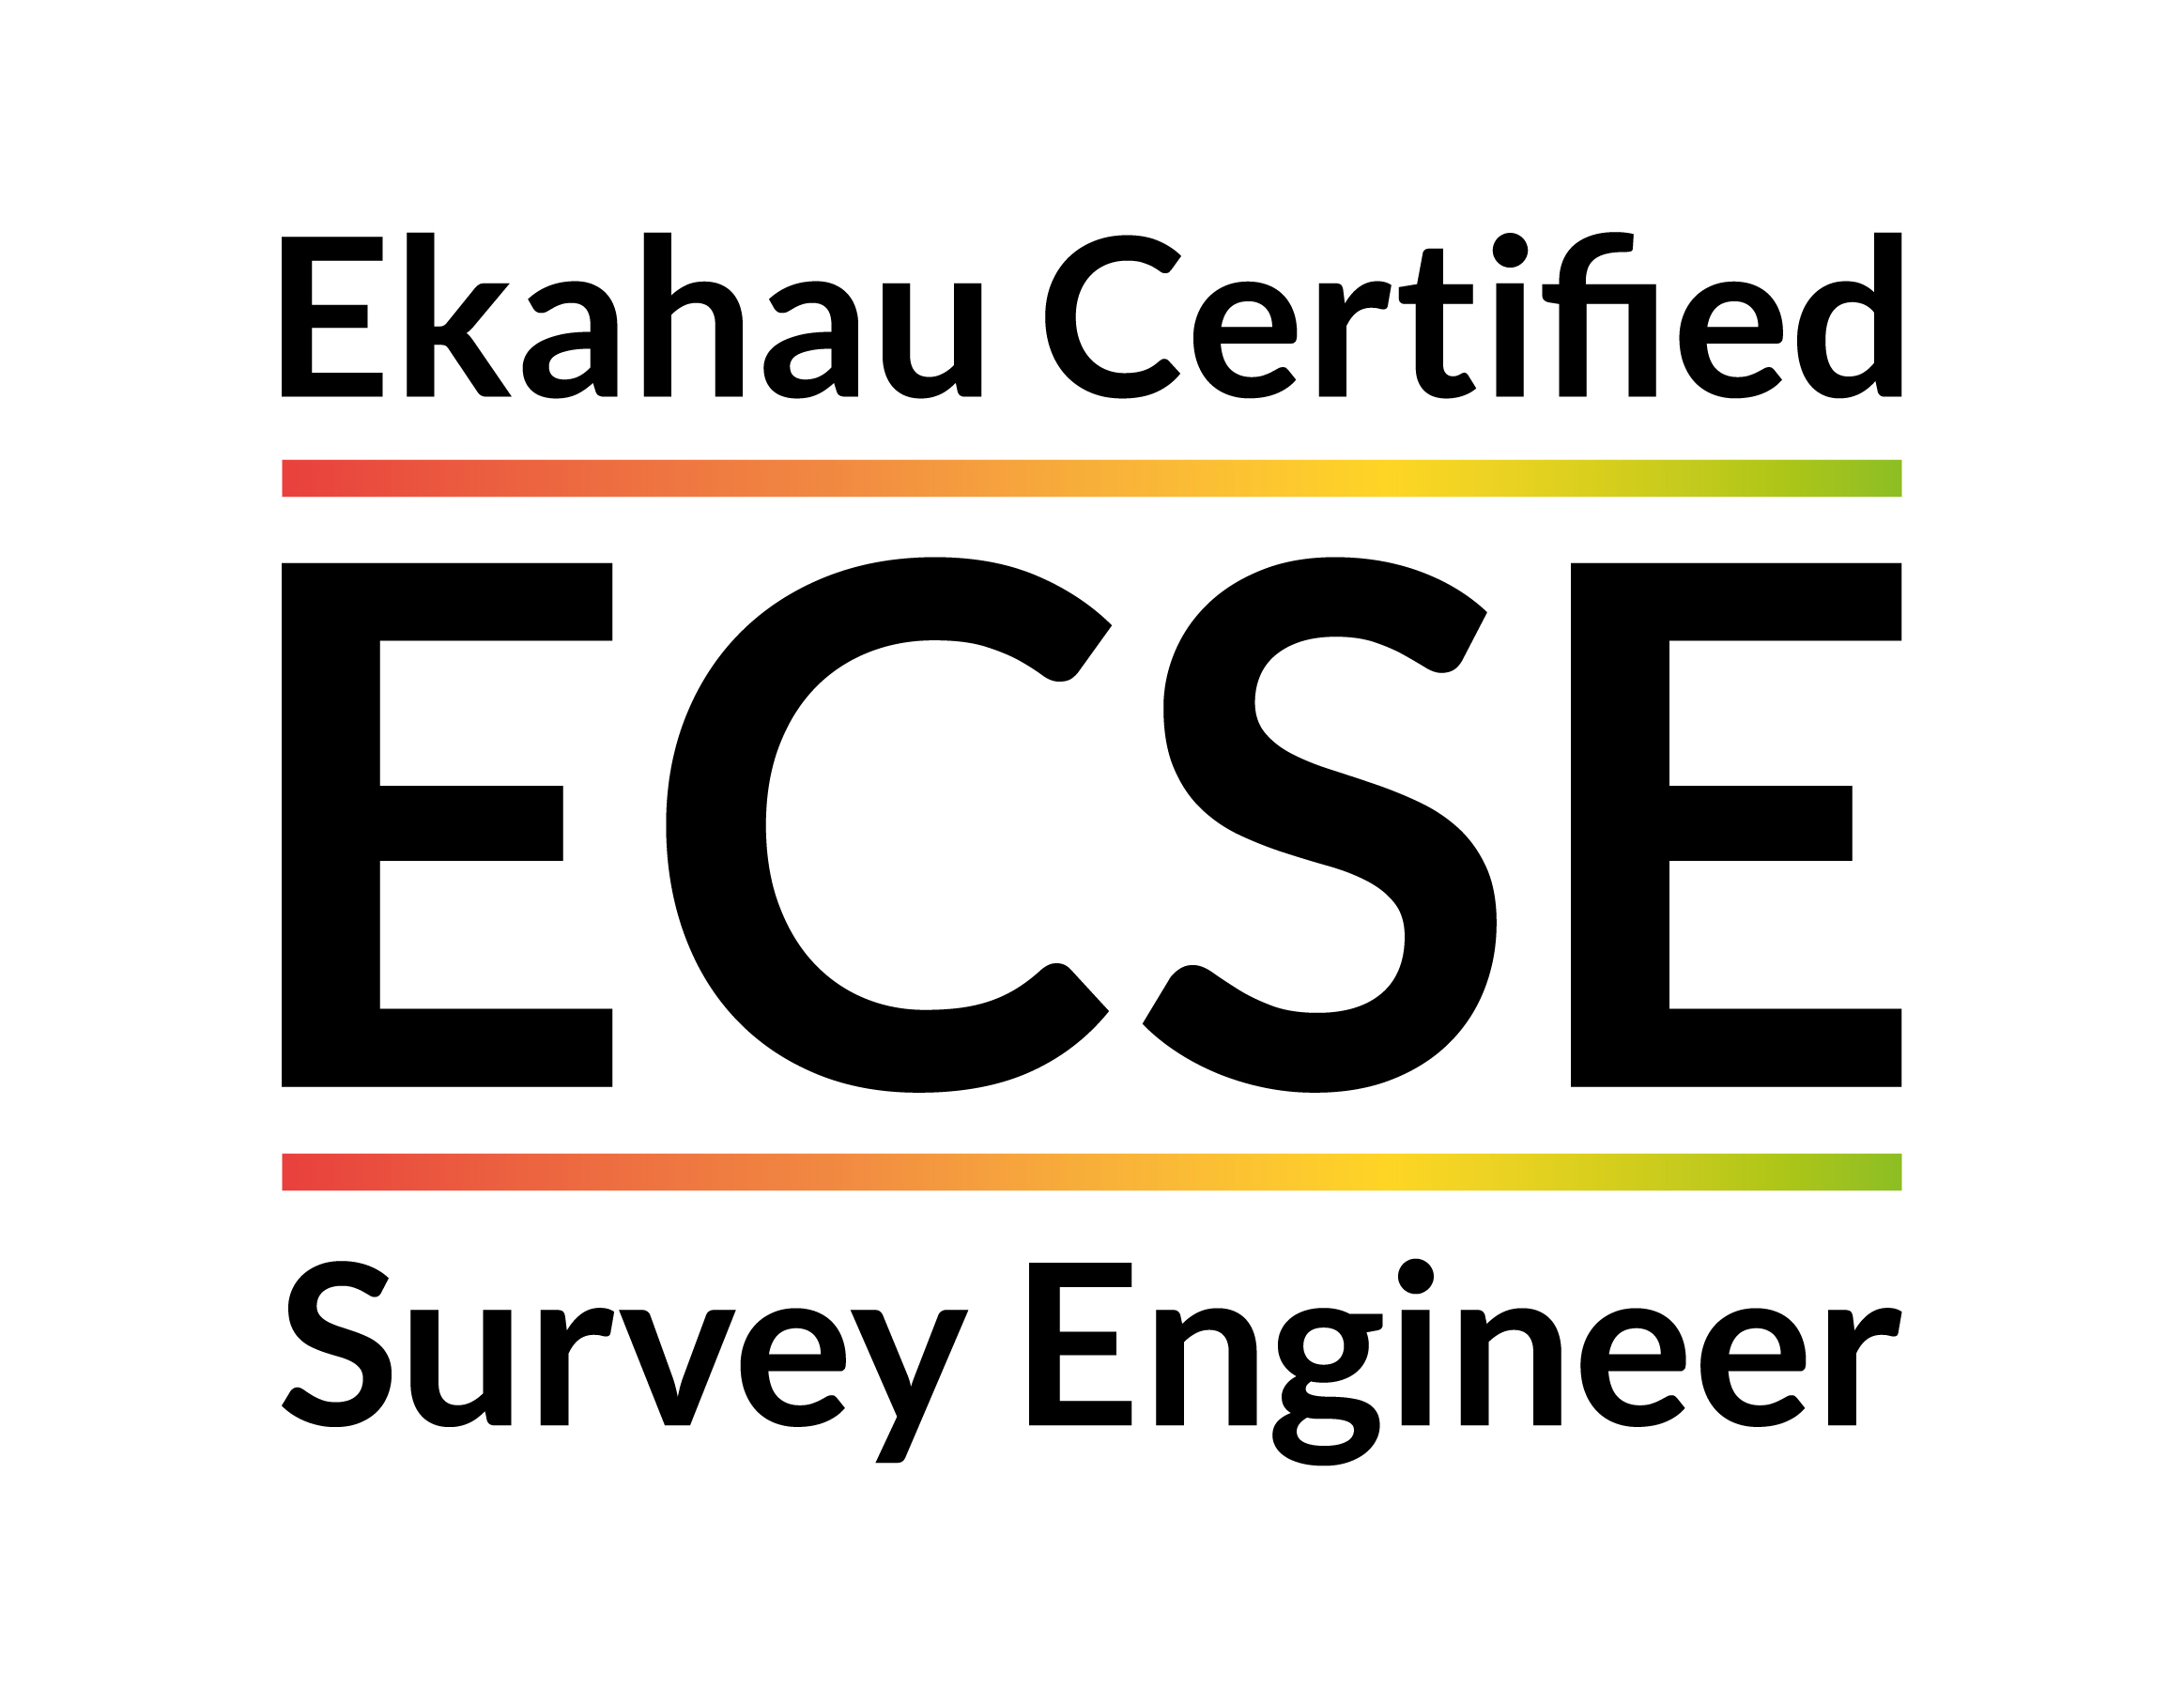 ECSE - Ekahau Certified Survey Engineer